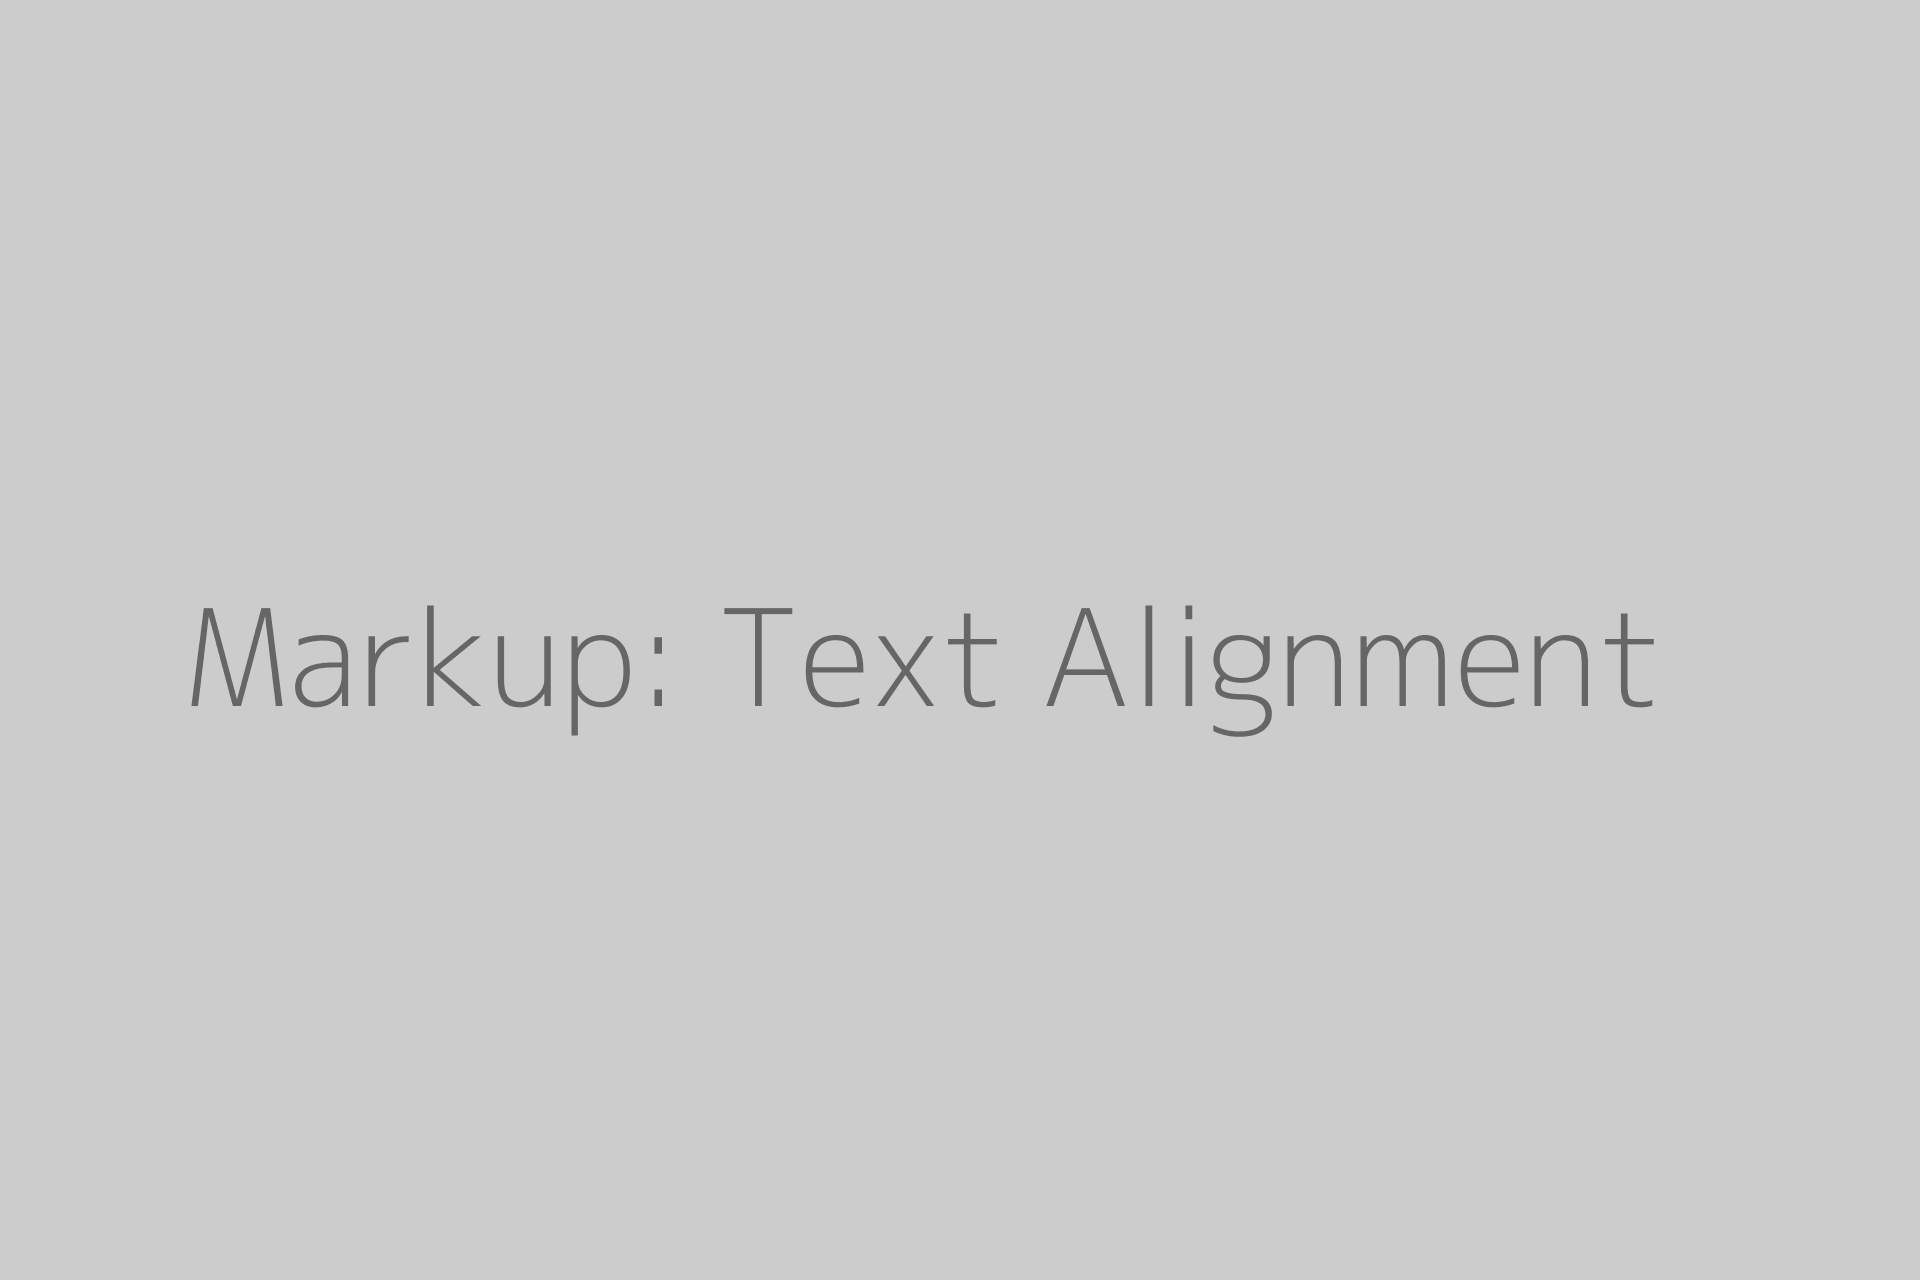 Markup: Text Alignment